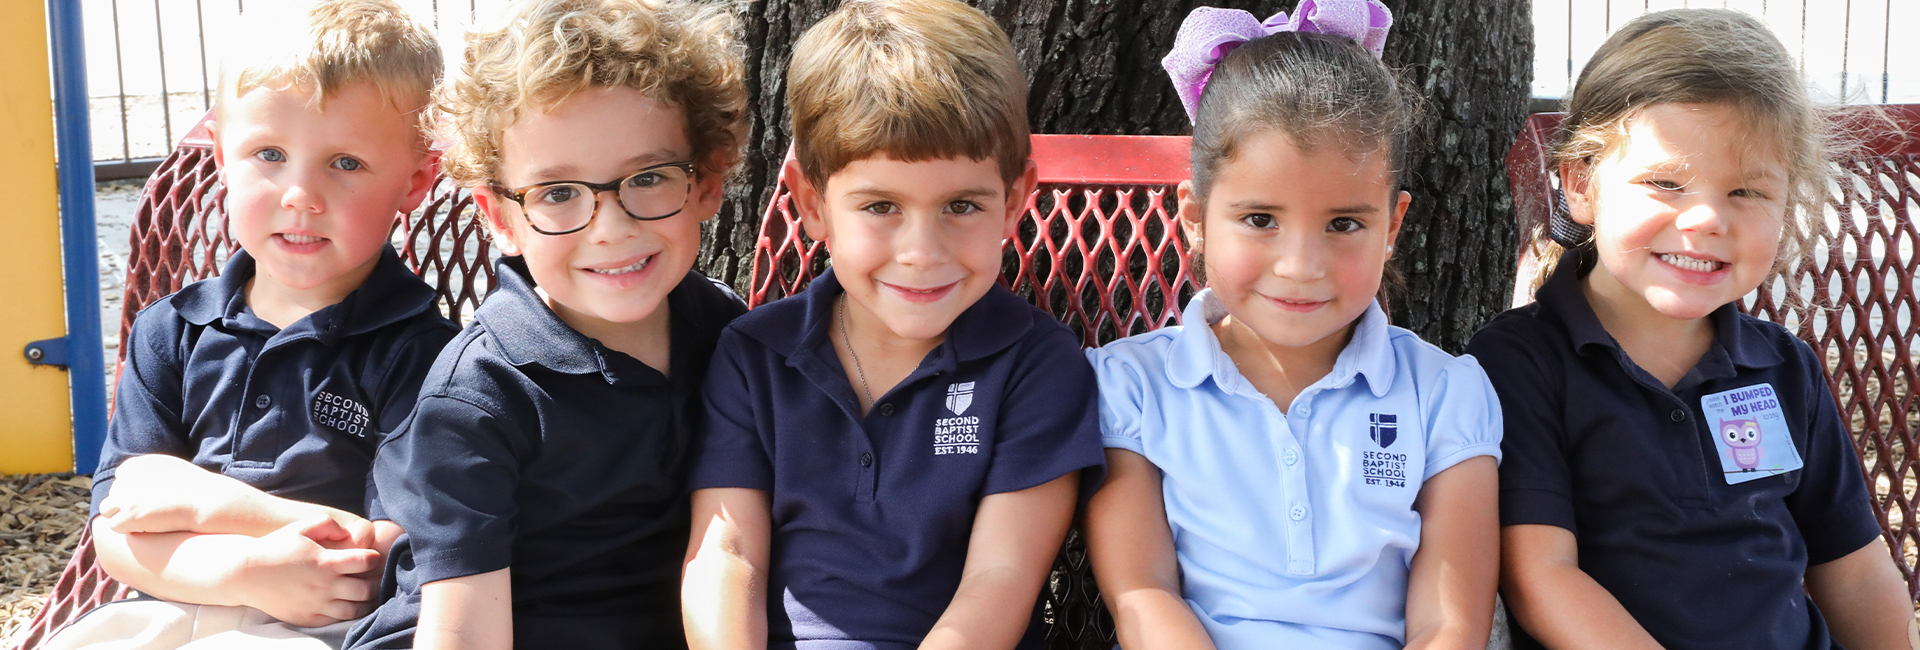 Boys and girls in the lower school at Second Baptist School gathered together on the playground